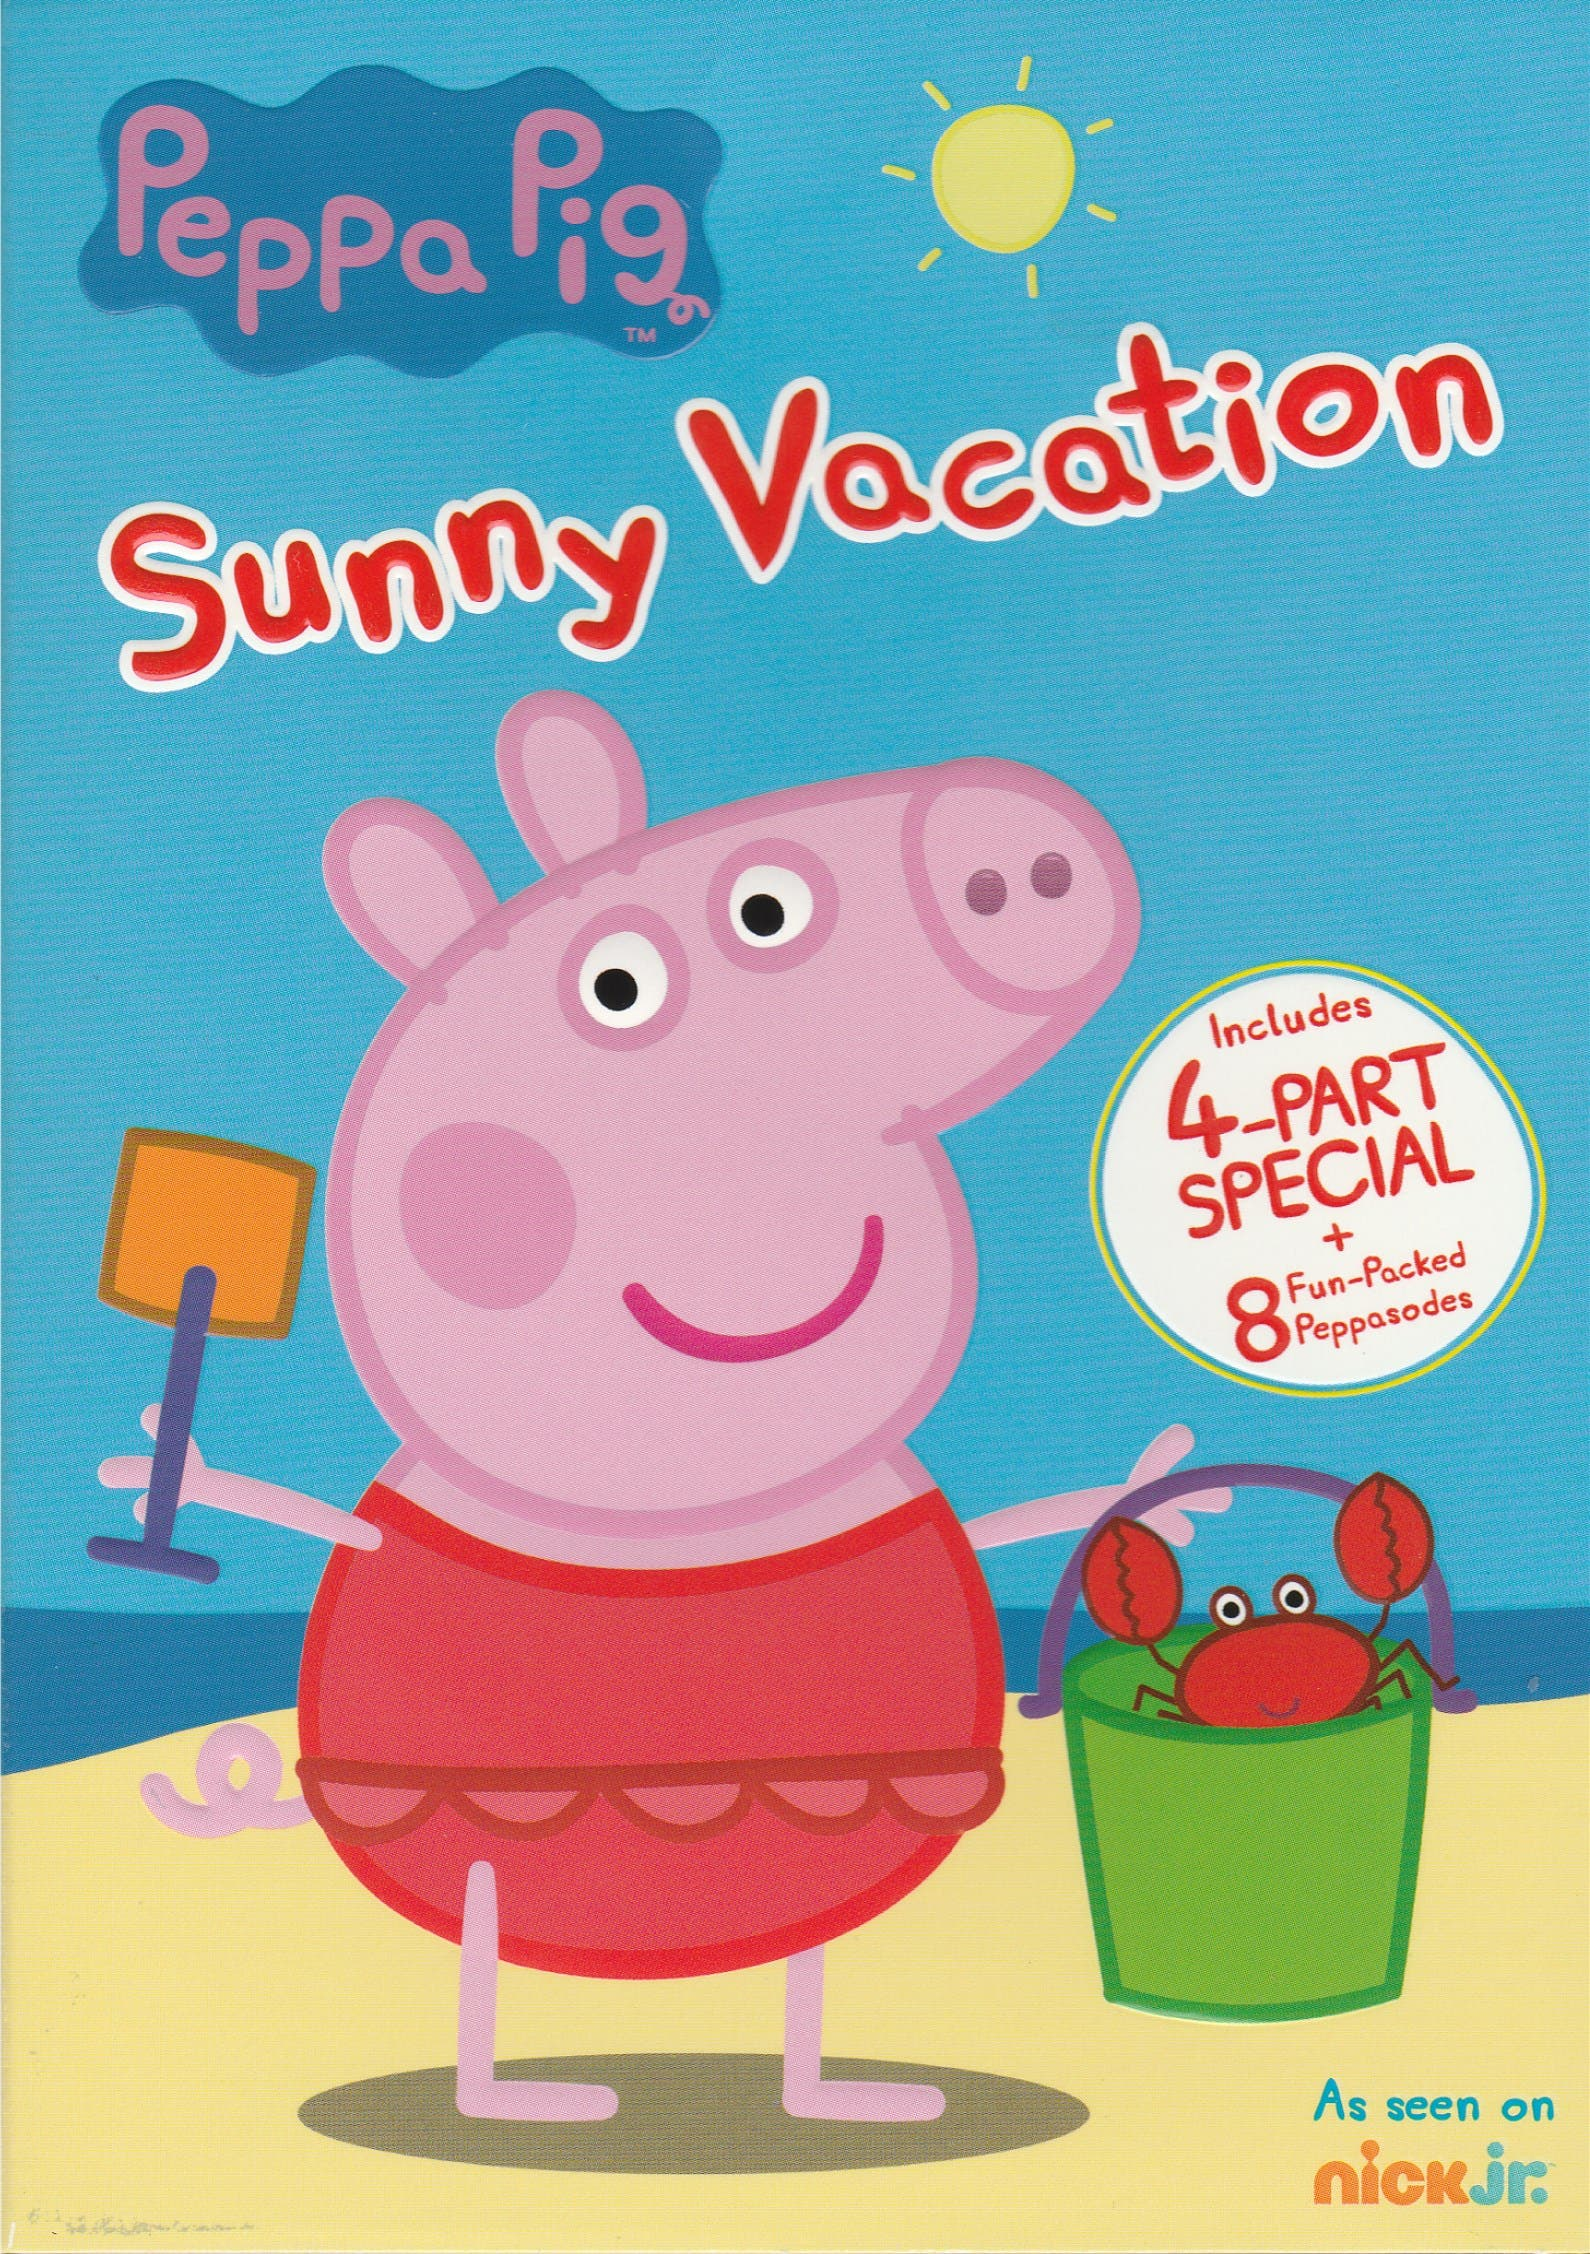 Peppa Pig Takes Us All On A Sunny Vacation Imperial Beach Ca Patch